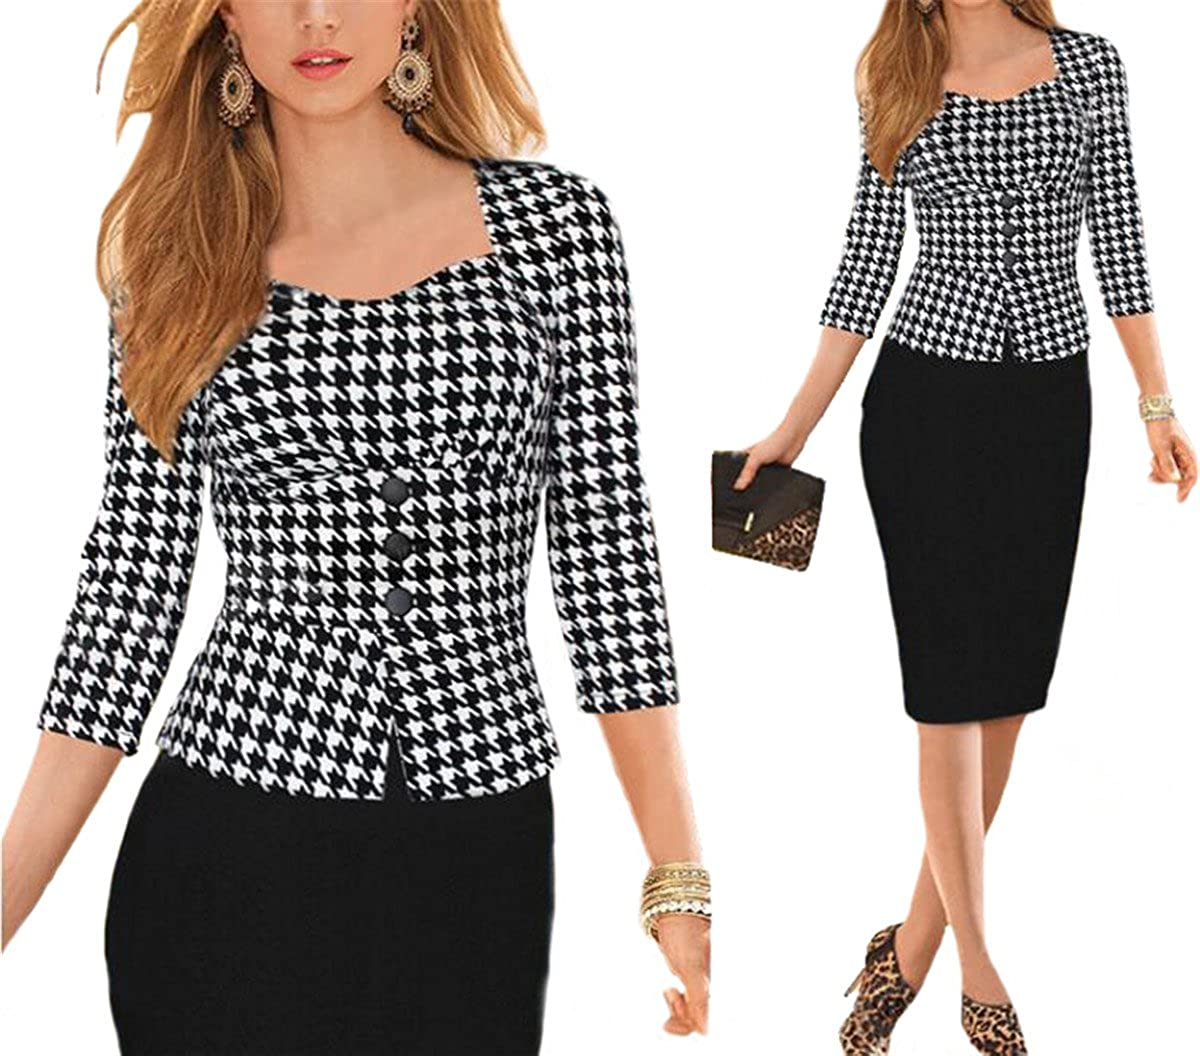 Allonly Three Buckle Lapel Wear to Work Business Bodycon Pencil Dress